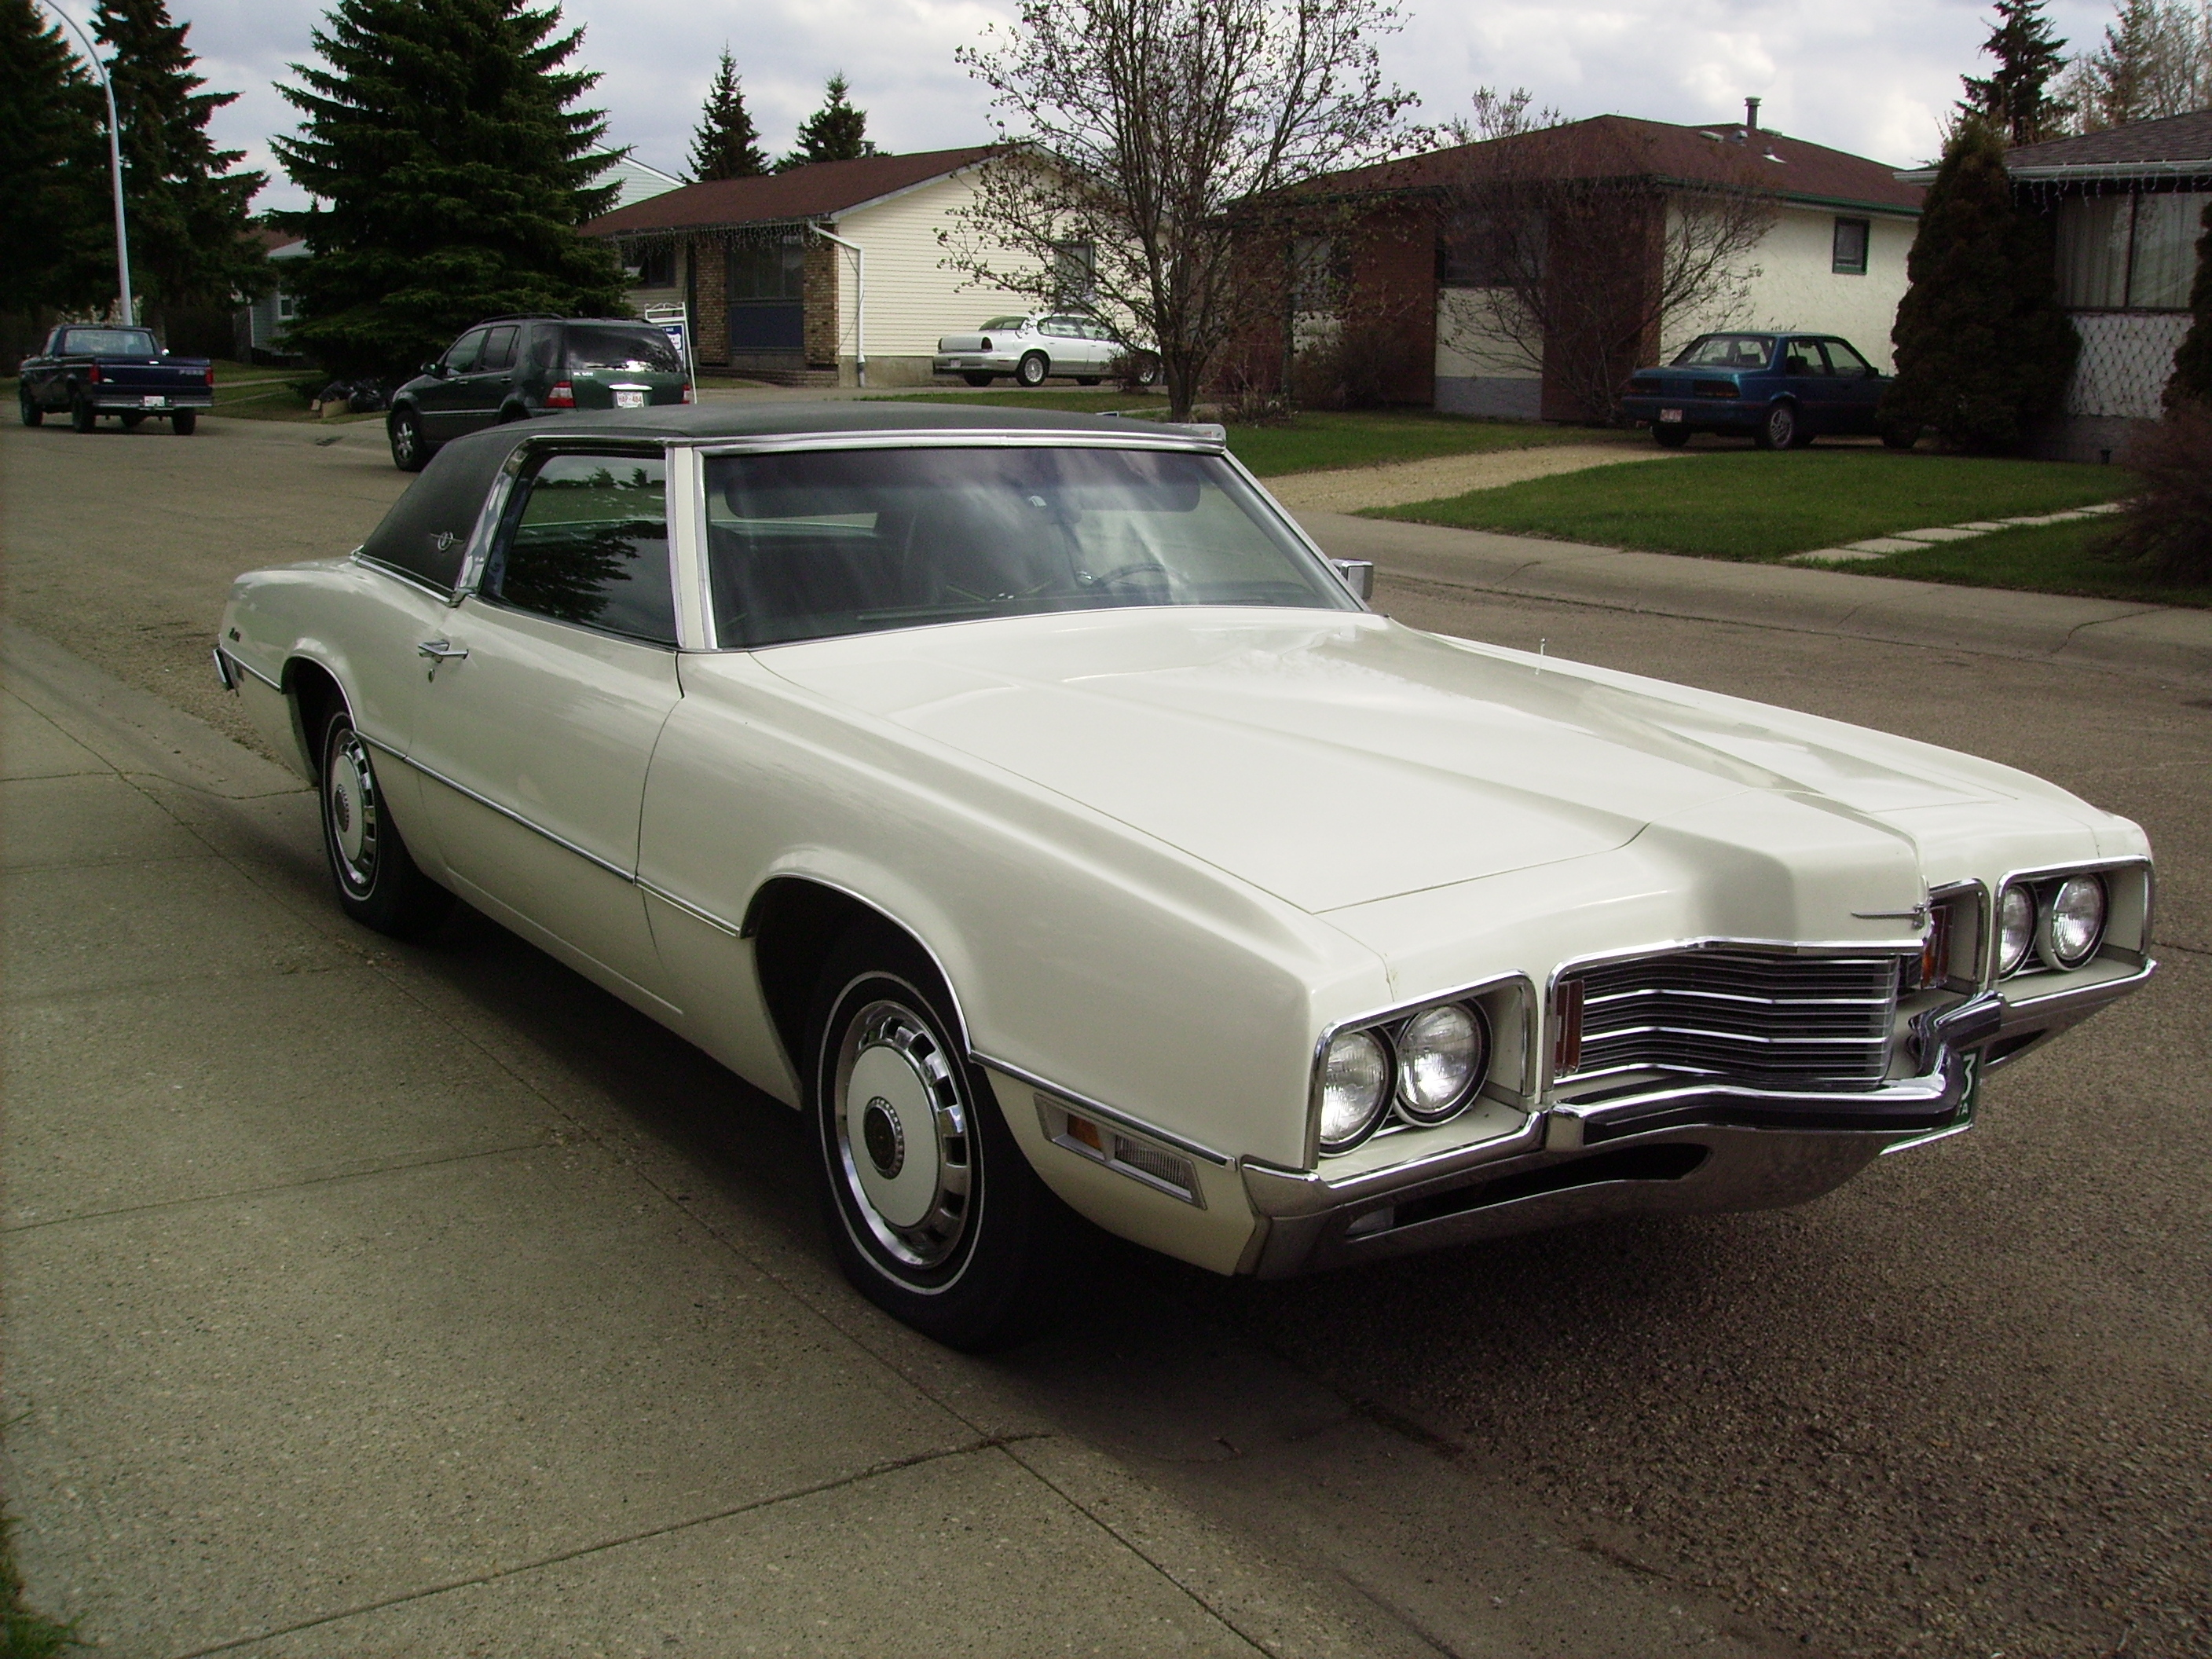 Darren_G 1971 Ford Thunderbird Specs, Photos, Modification Info at ...